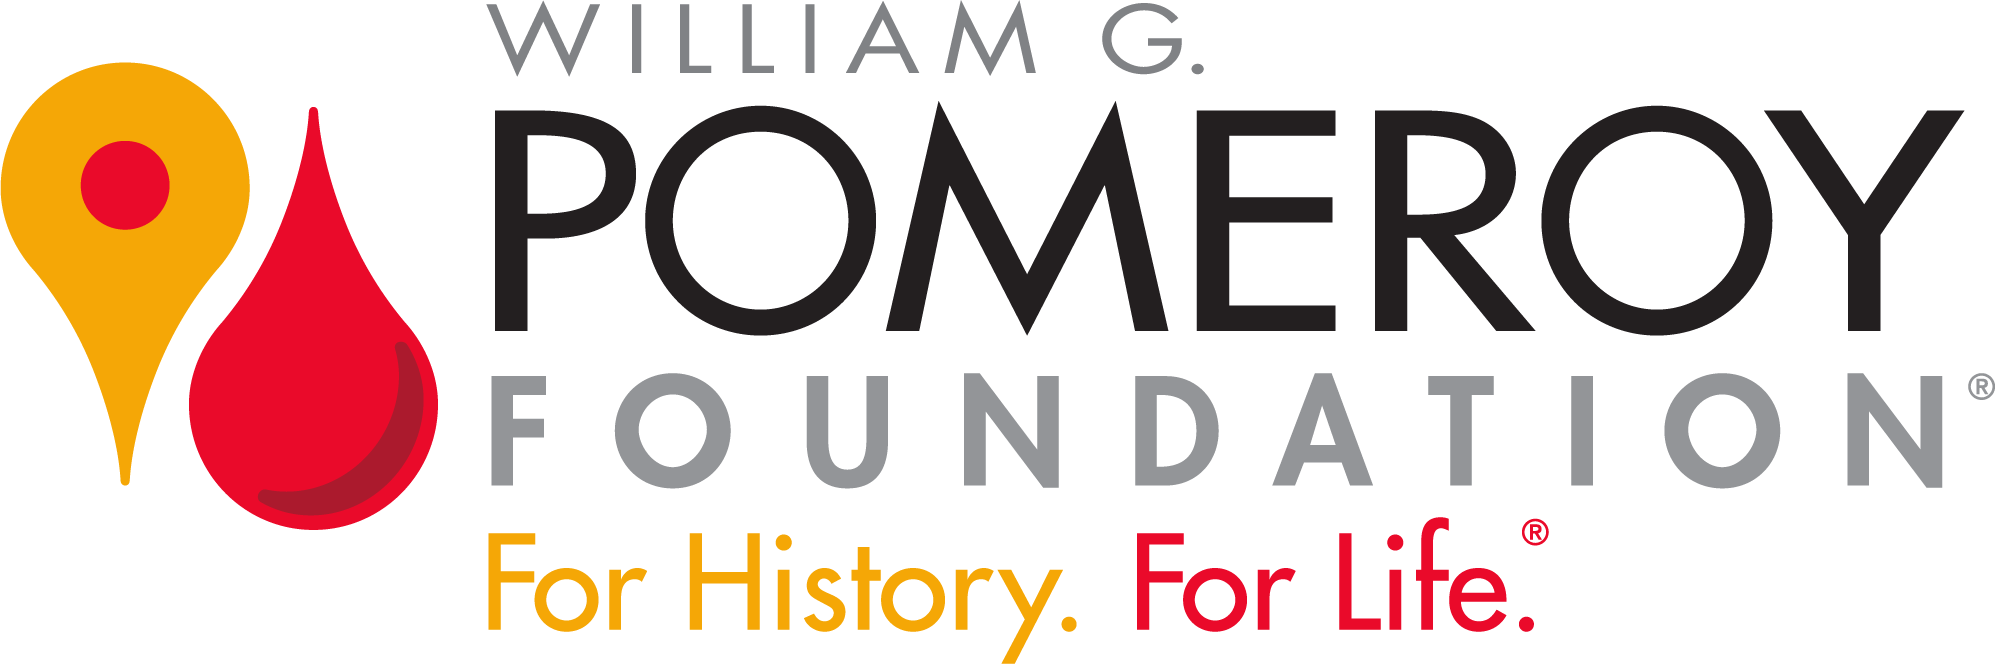 William G Pomeroy Foundation2